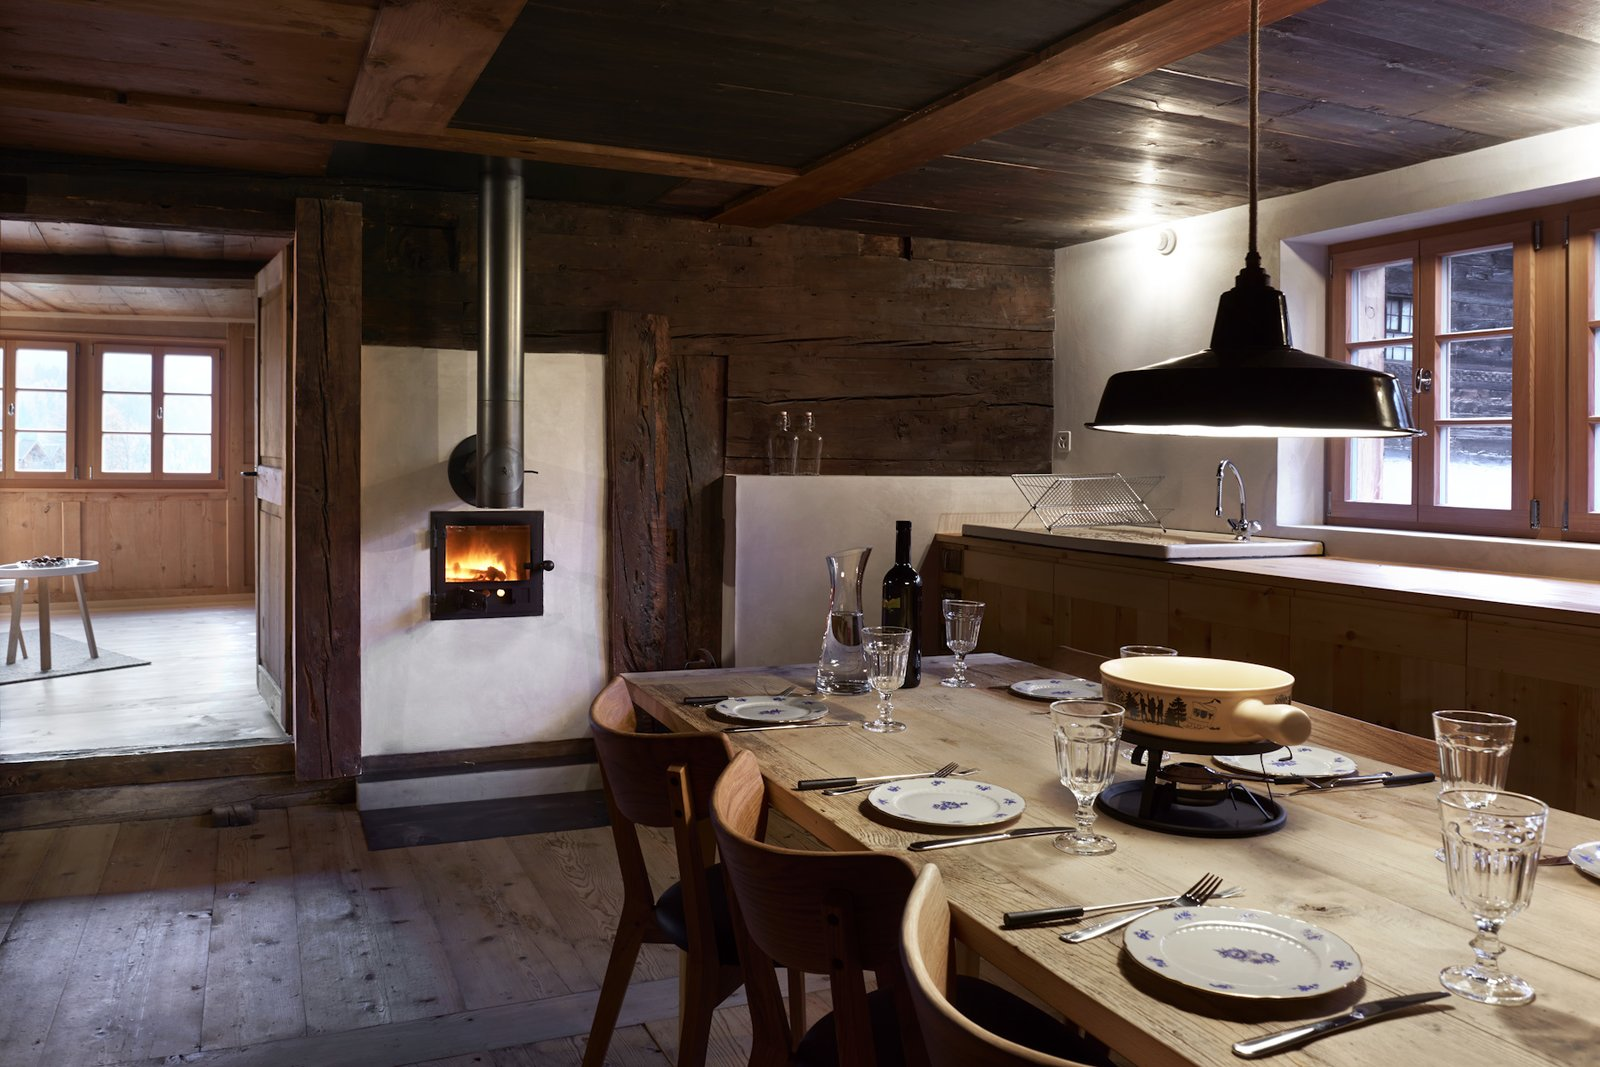 Dining Room, Wood Burning Fireplace, Dark Hardwood Floor, Chair, Table, and Pendant Lighting  Photo 3 of 13 in A Renovated Pagan House in the Swiss Alps Puts Guests in Touch With the Past